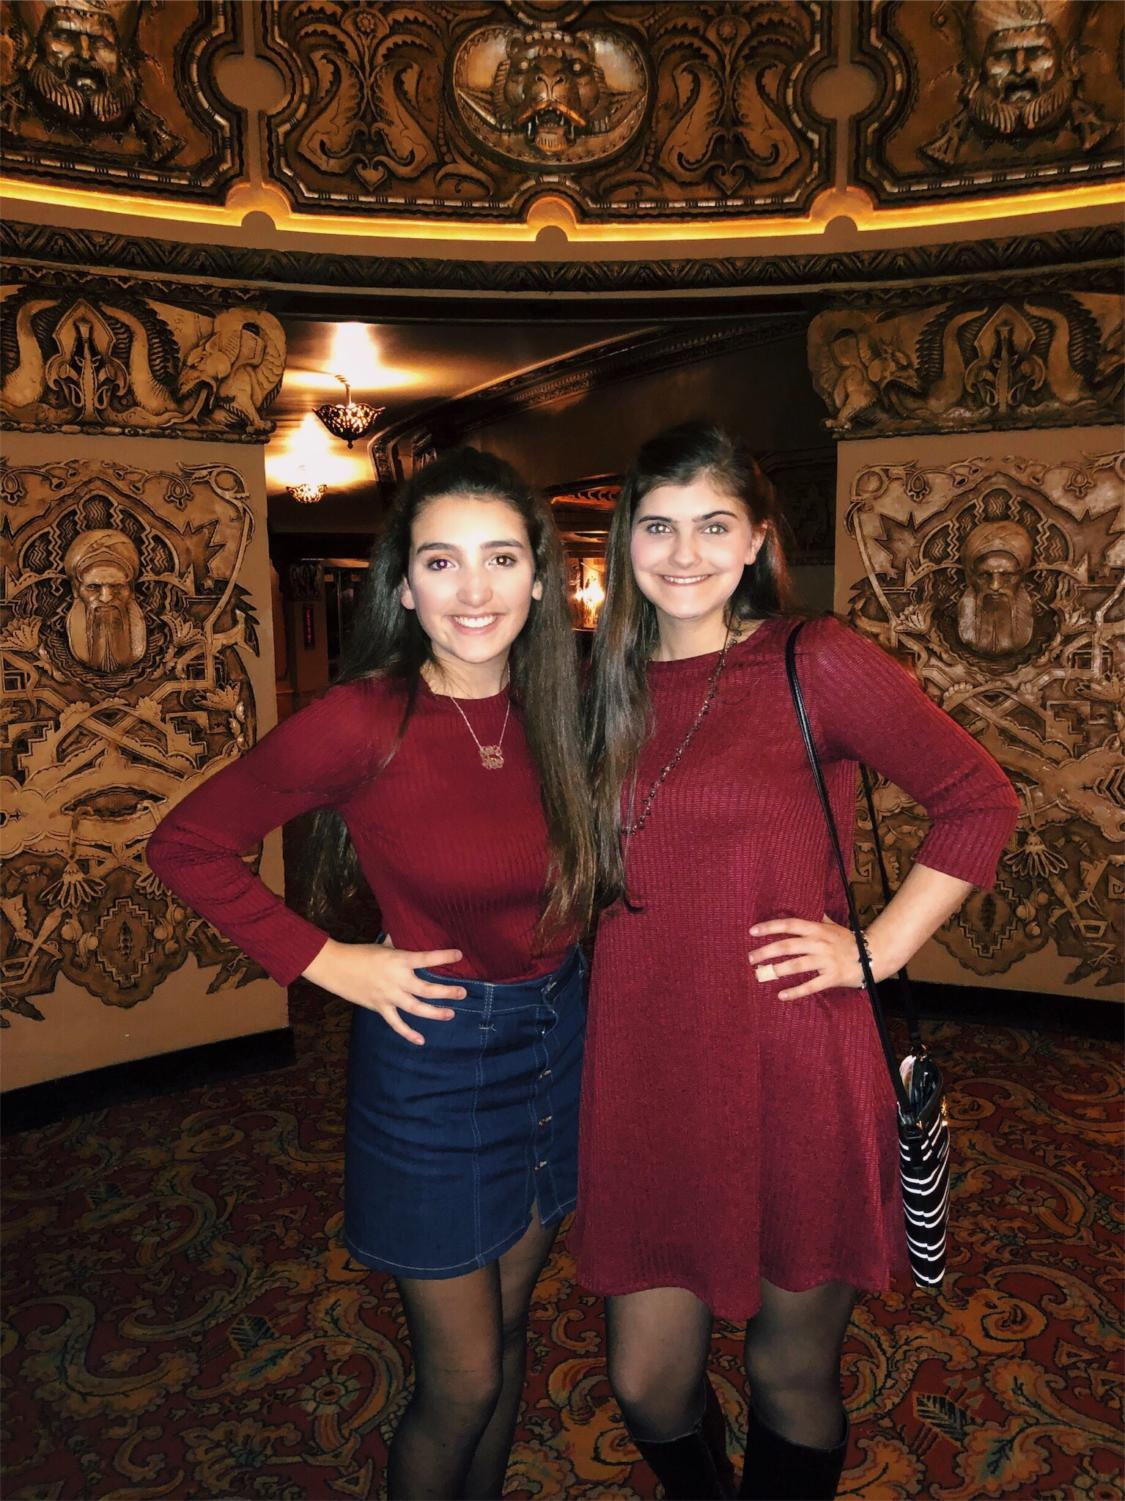 Lola Cadice (me left) and Emily Grant (right) enjoying a night at the Fox Theatre seeing Aladdin.